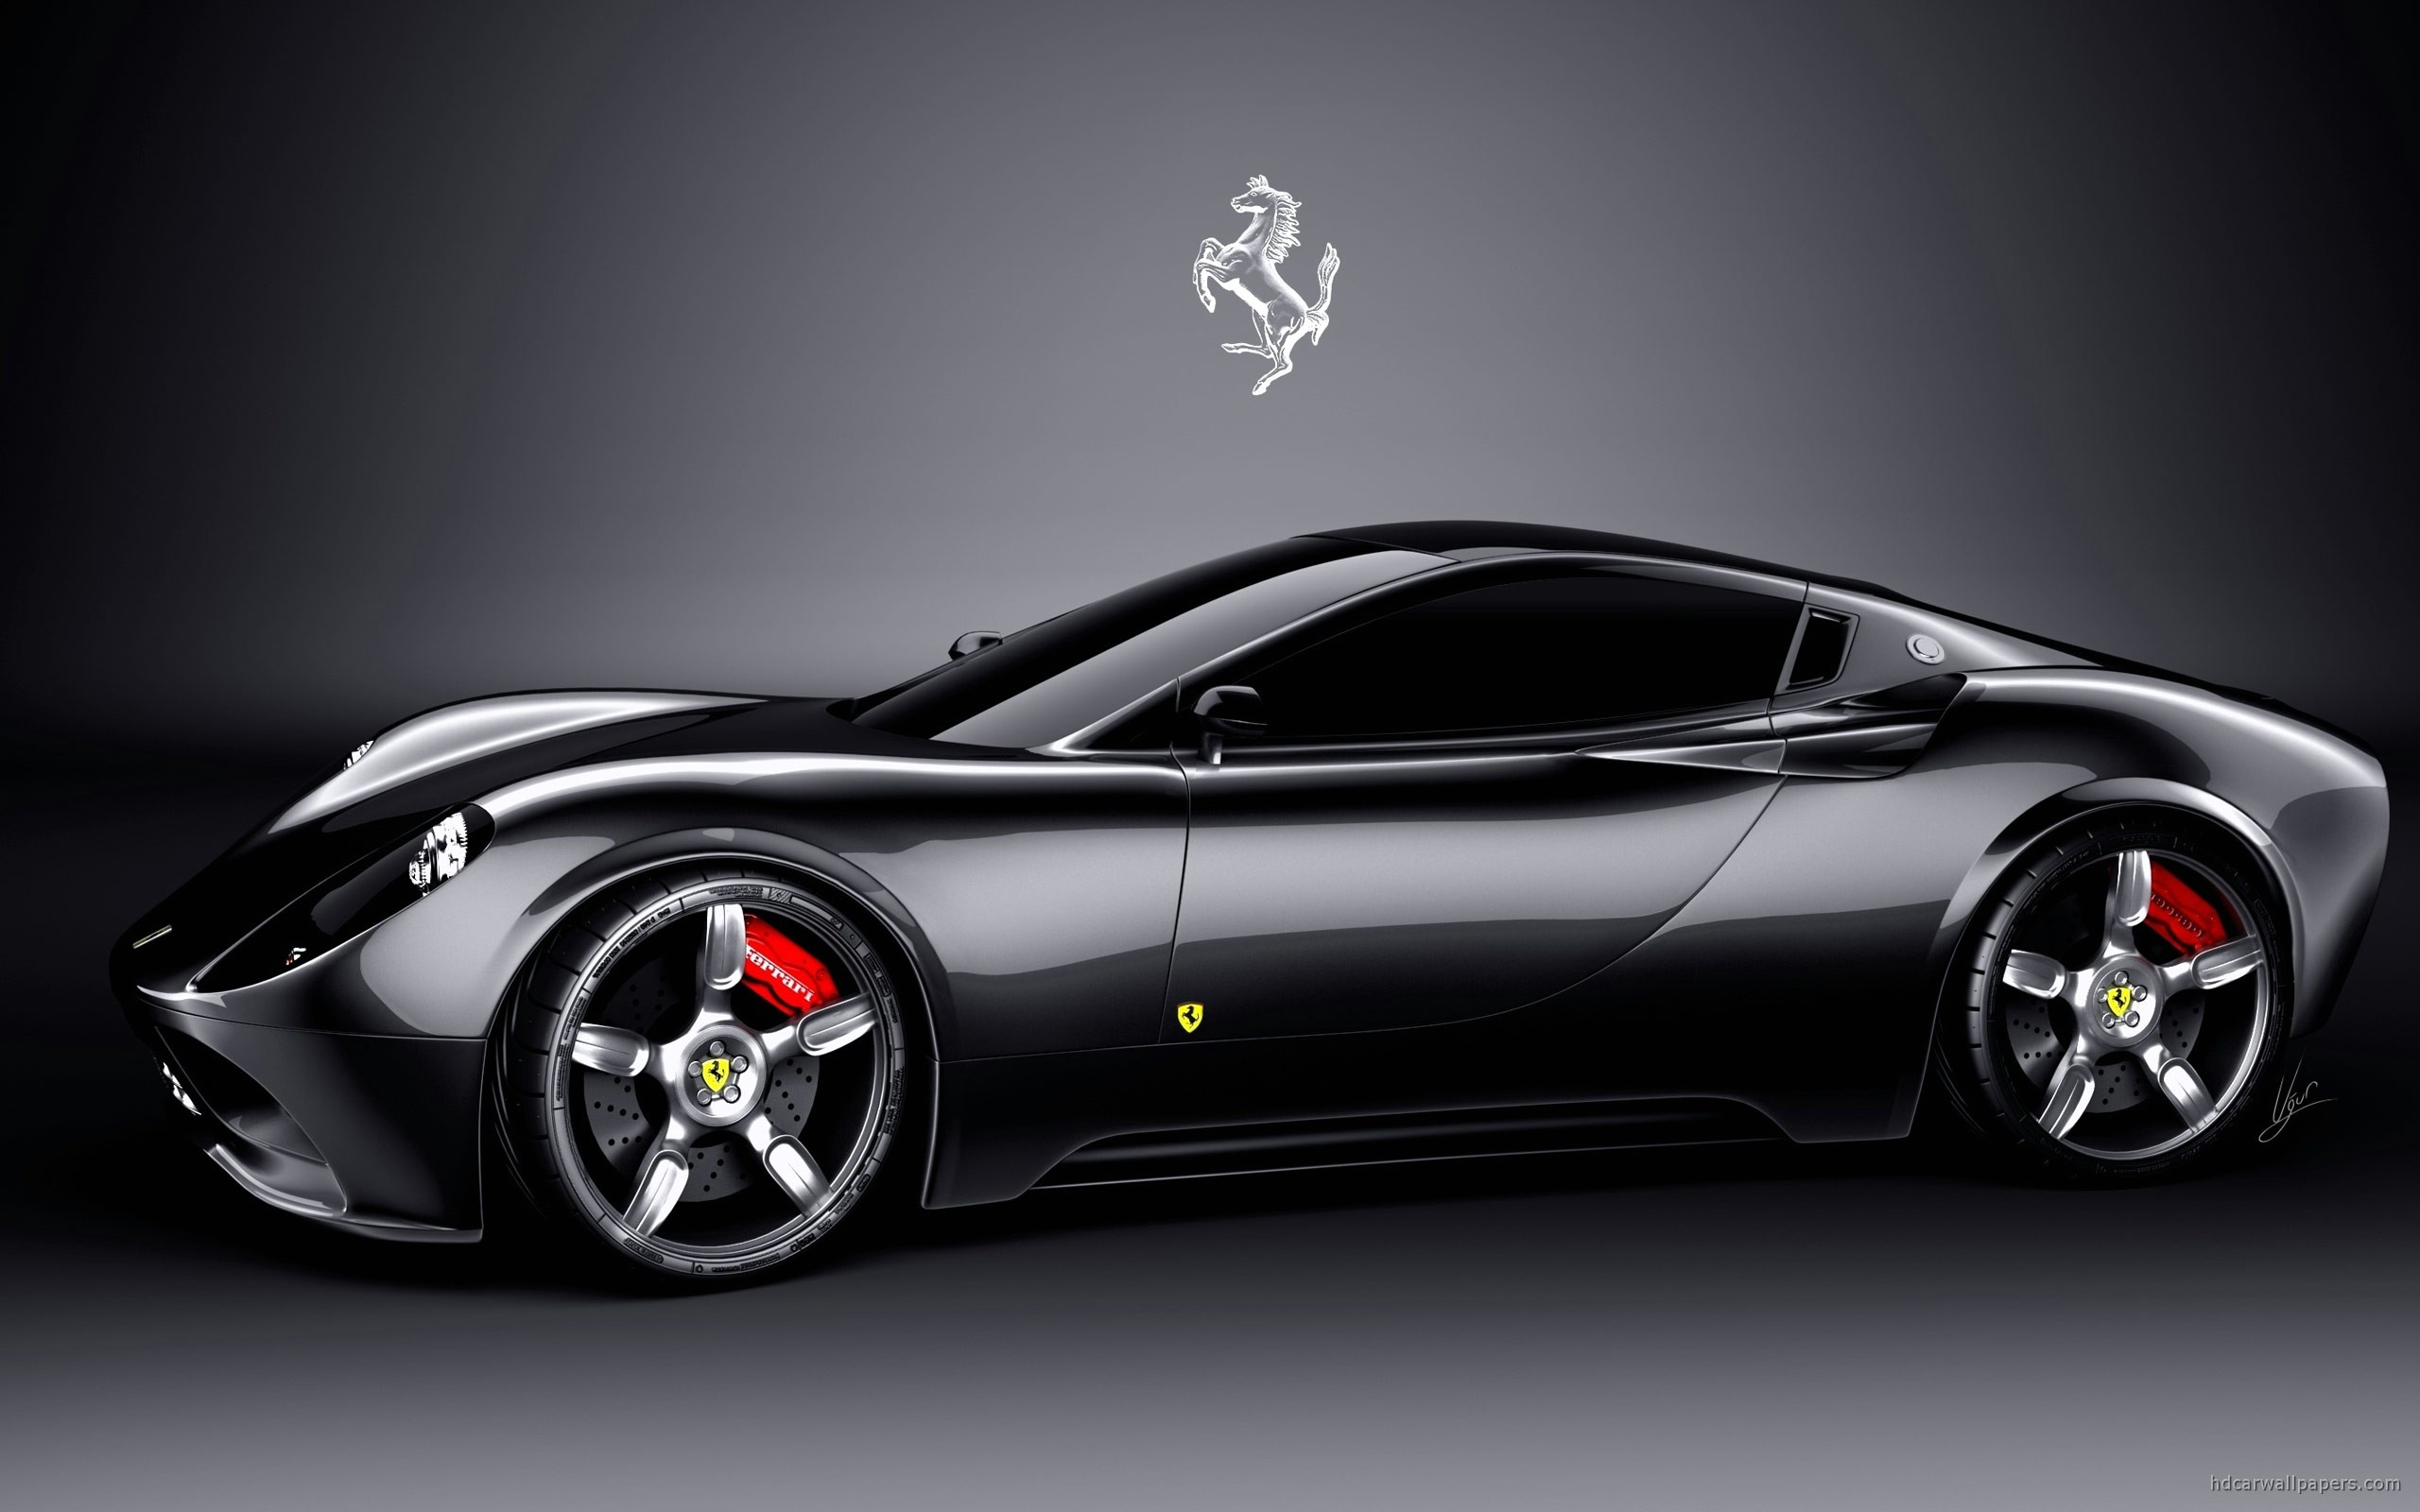 http://www.hdcarwallpapers.com/walls/ferrari_hd_widescreen-wide.jpg